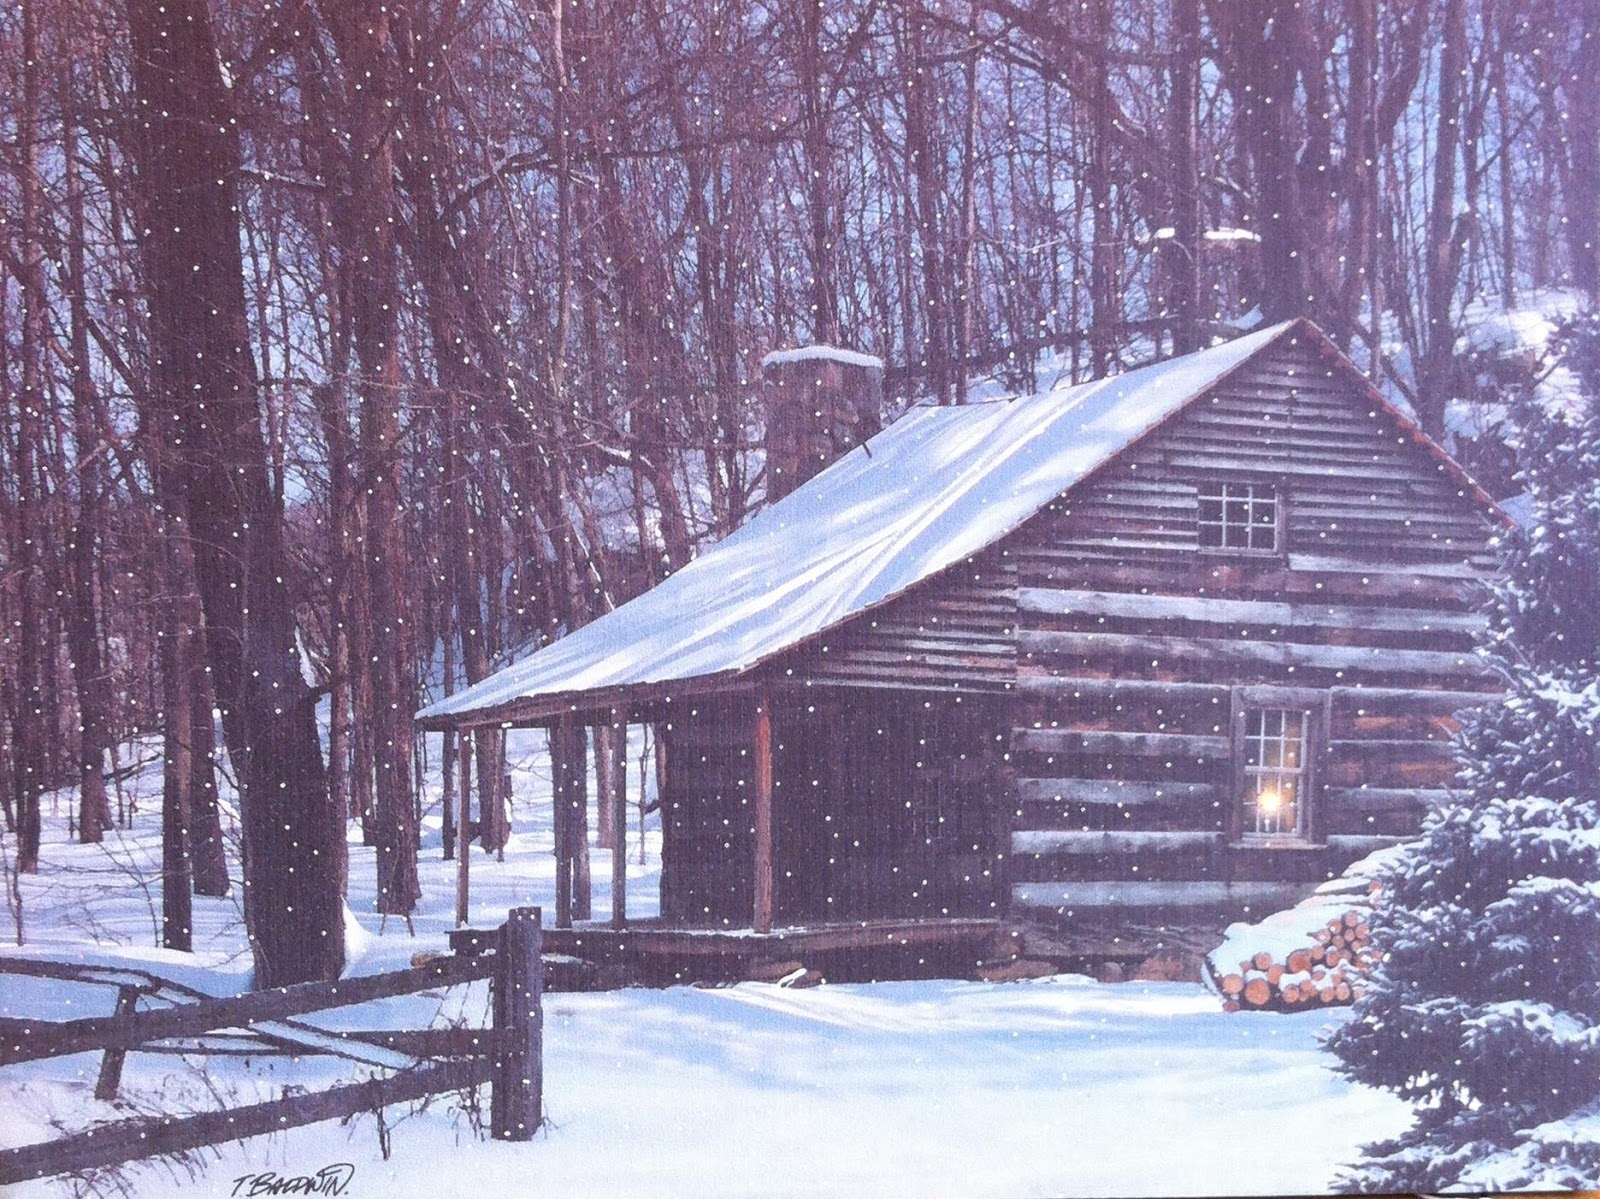 Marvelous photograph of Winter Log Cabin Of a log cabin in winter. with #334899 color and 1600x1199 pixels